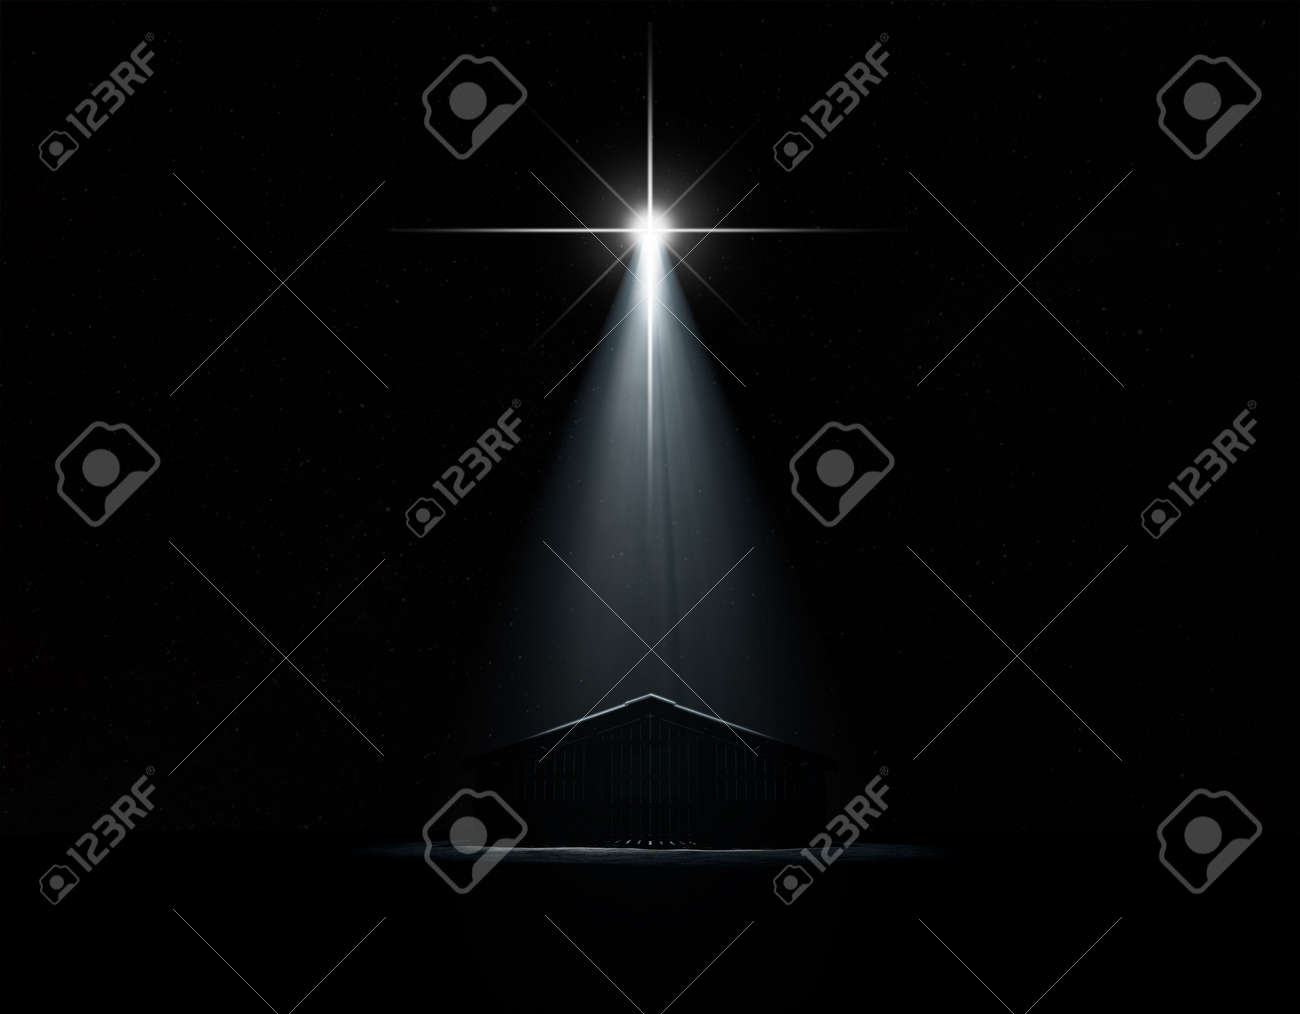 A 3D render of an abstract depiction of the nativity scene of christs birth in bethlehem with an isolated stable being spotlit by a bright star on dark starry night background - 63457223